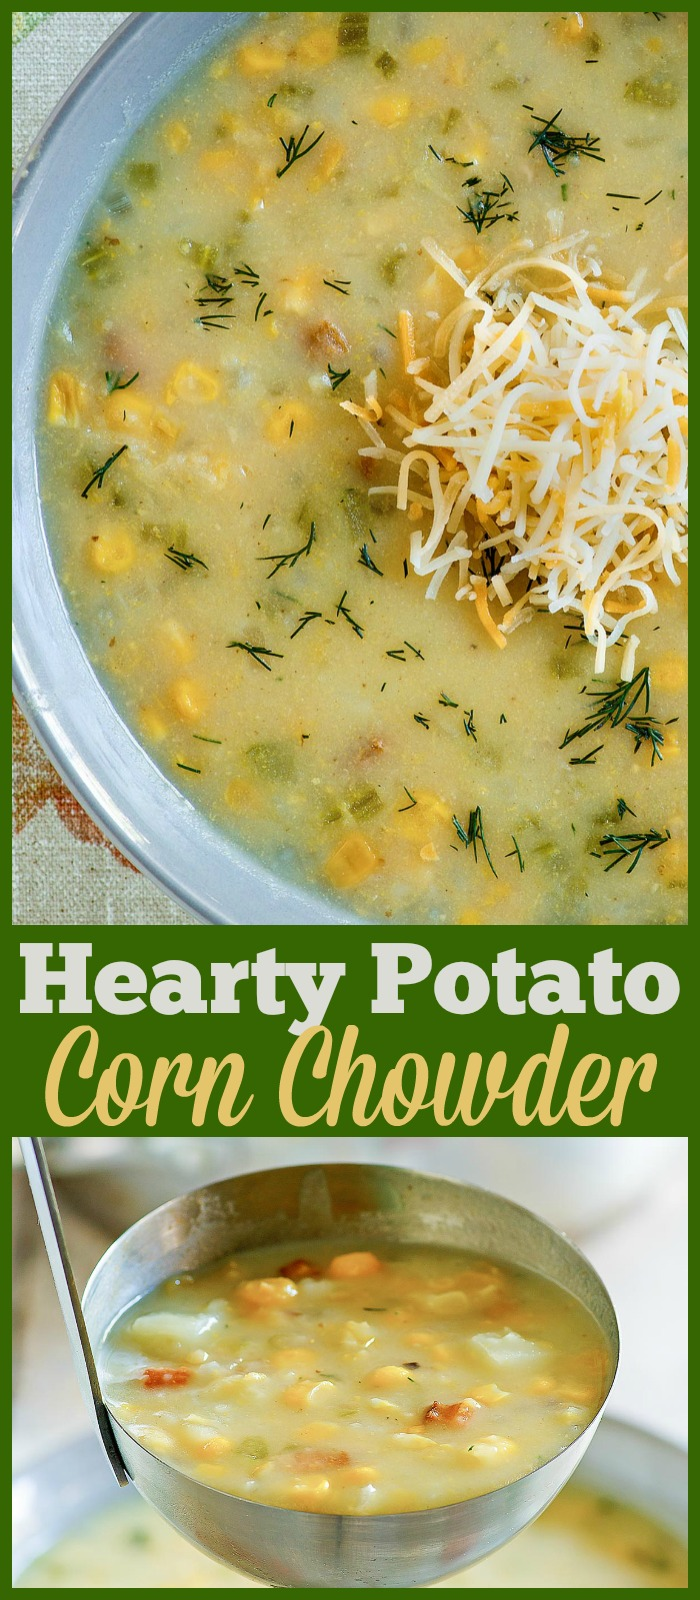 This filling and easy chowder is loaded with corn and potatoes. #soup #chowder #potato #corn